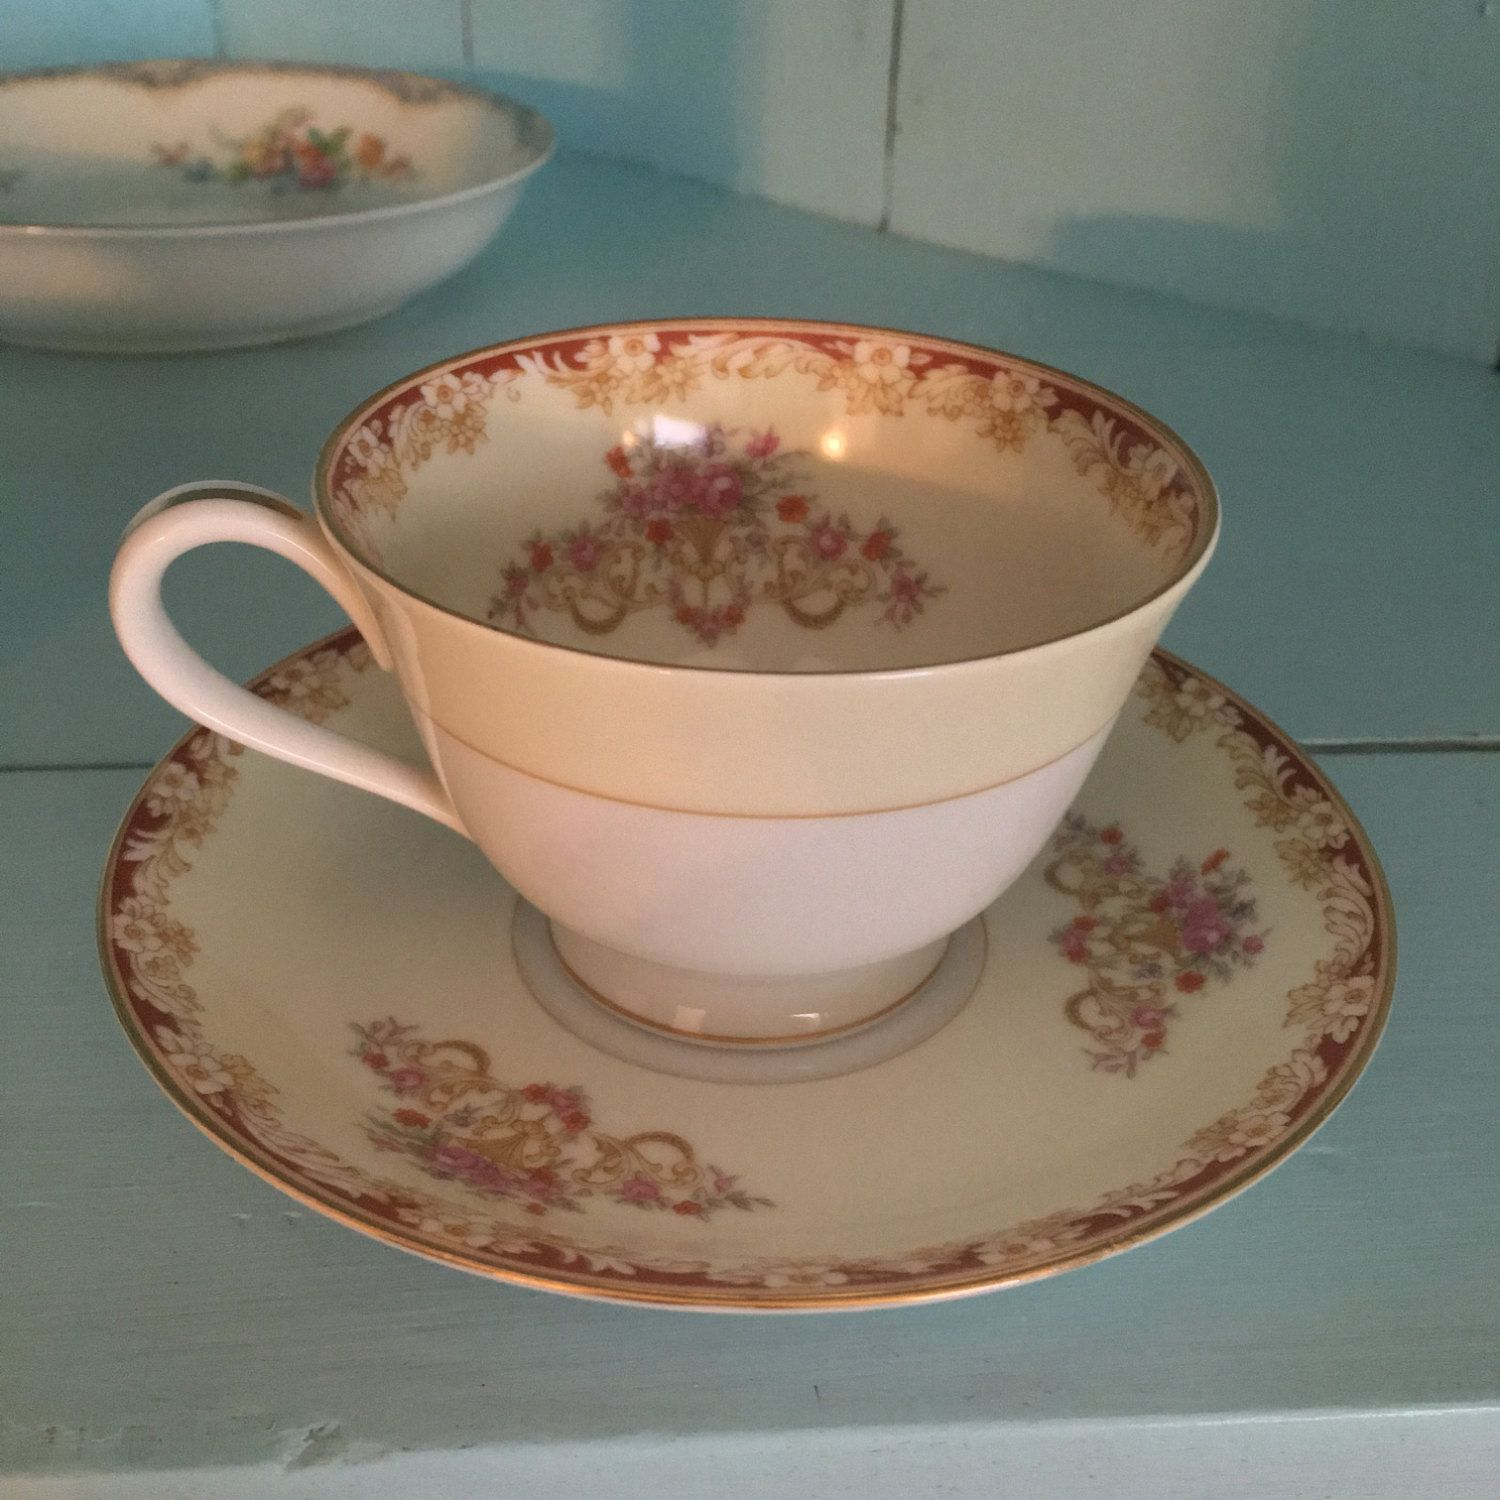 Nortake China Tea Cup and Plate Pink Floral Cheri